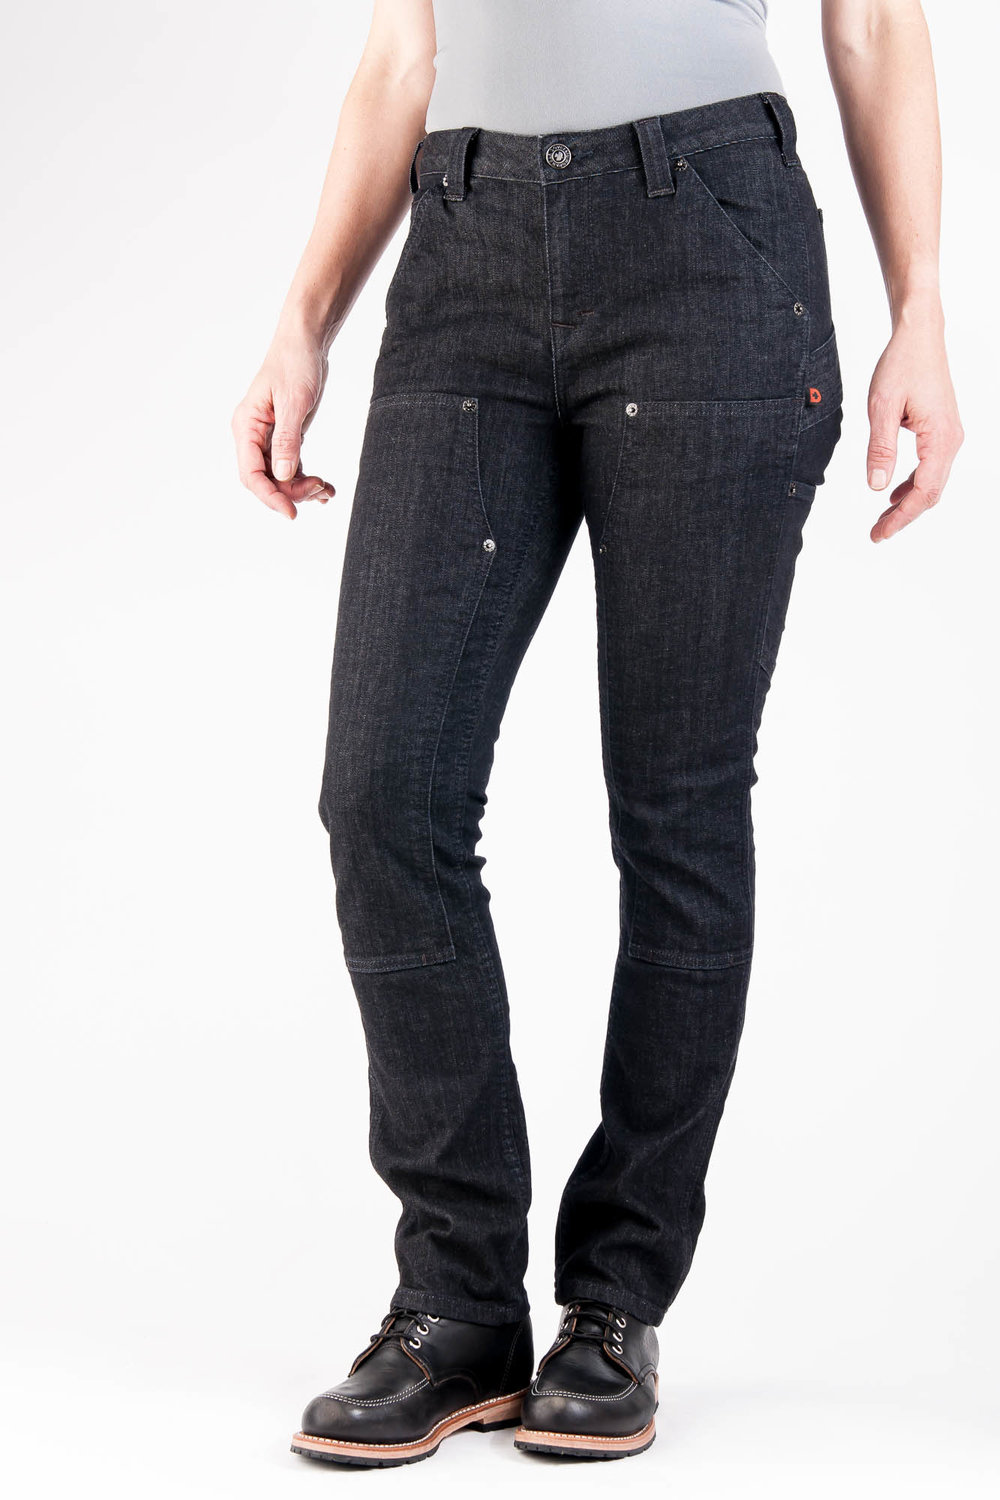 Maven Black Denim